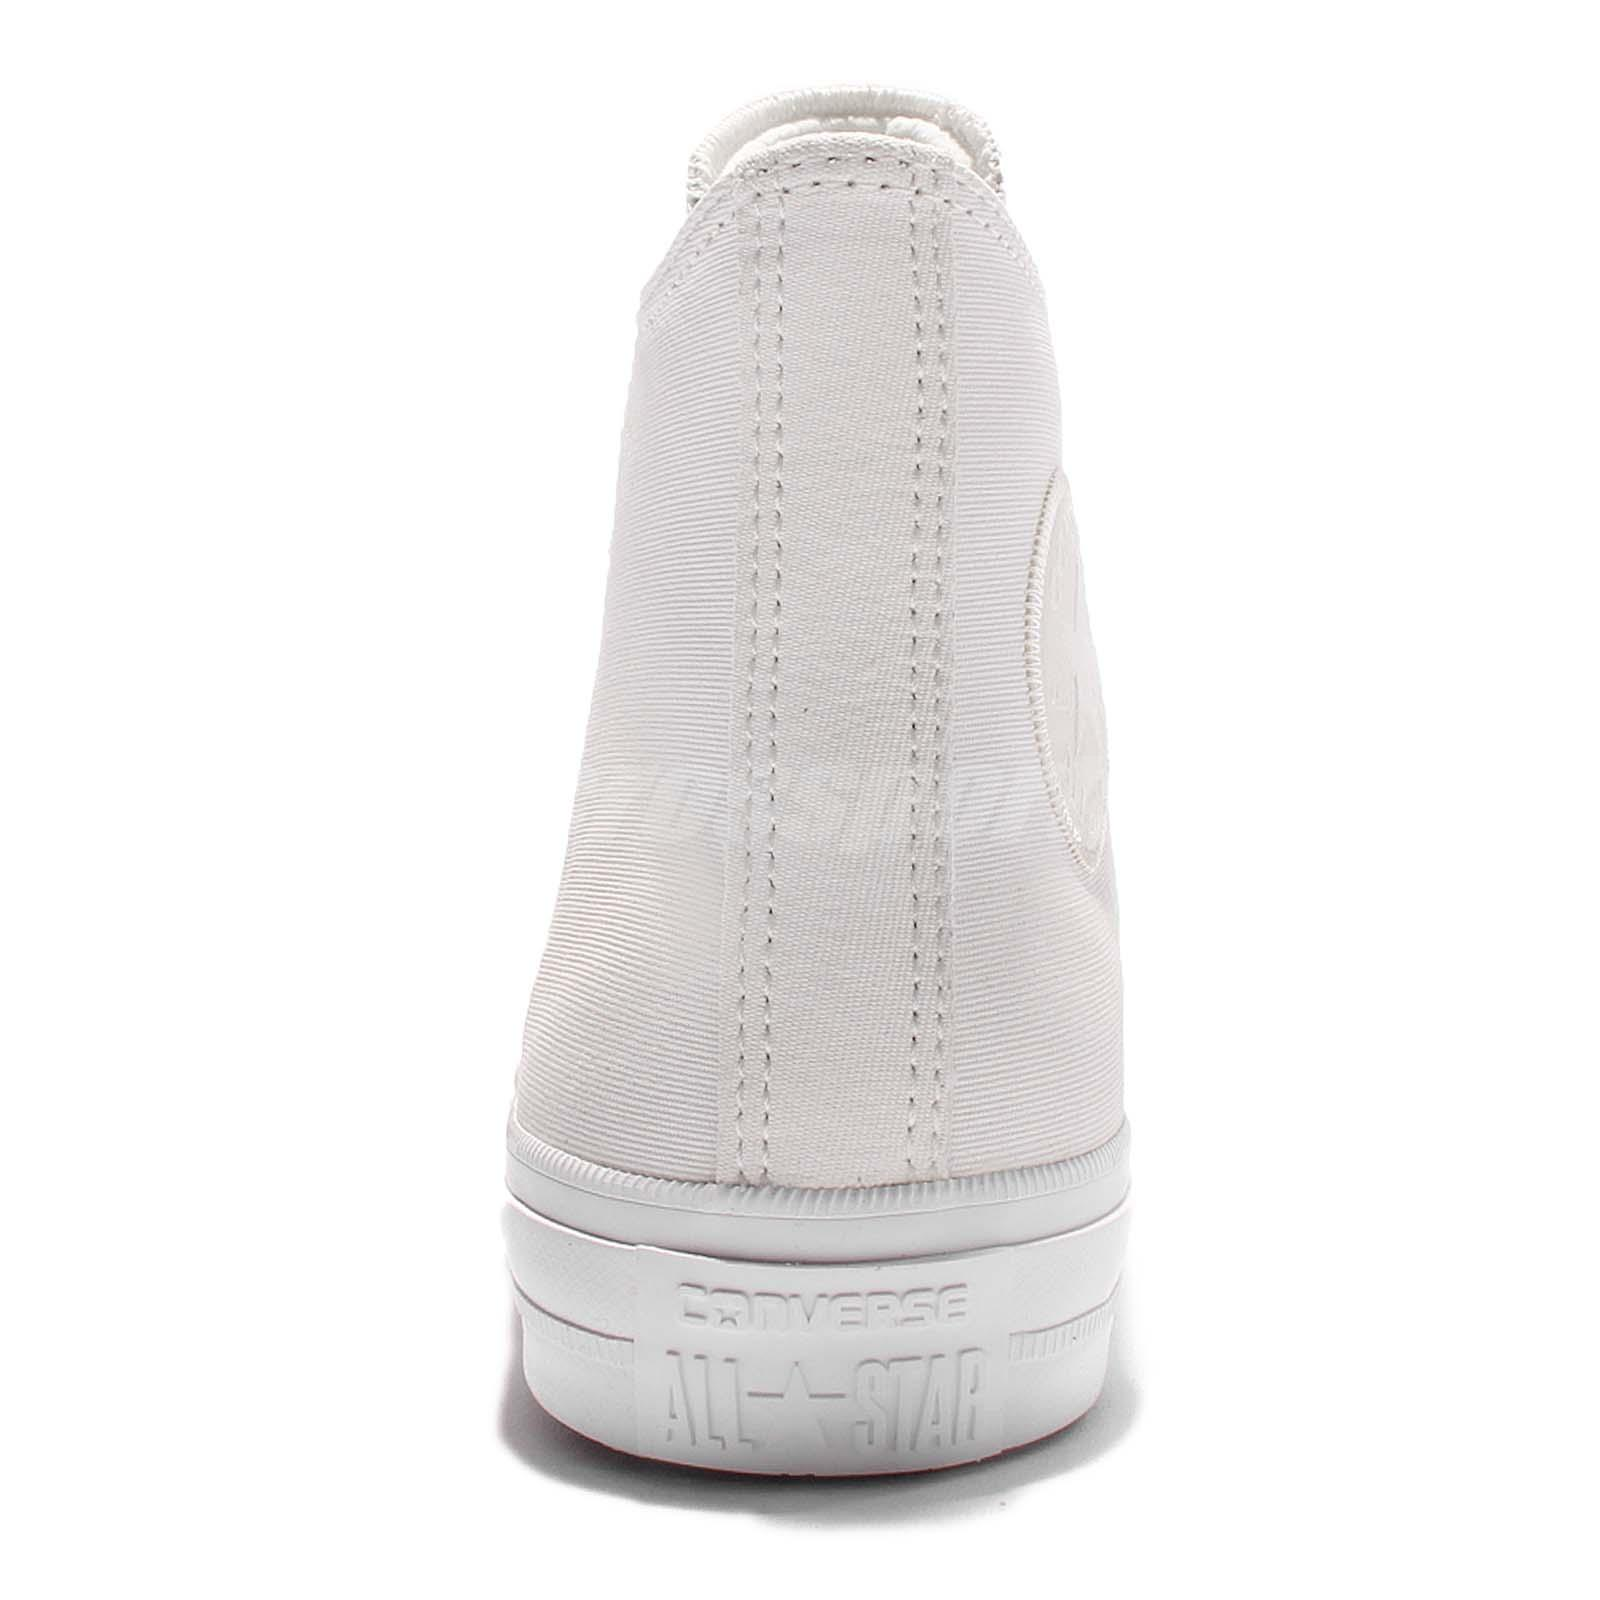 0a482a4066b5 Converse Chuck Taylor All Star II Two-Tone Leather High Top White ...